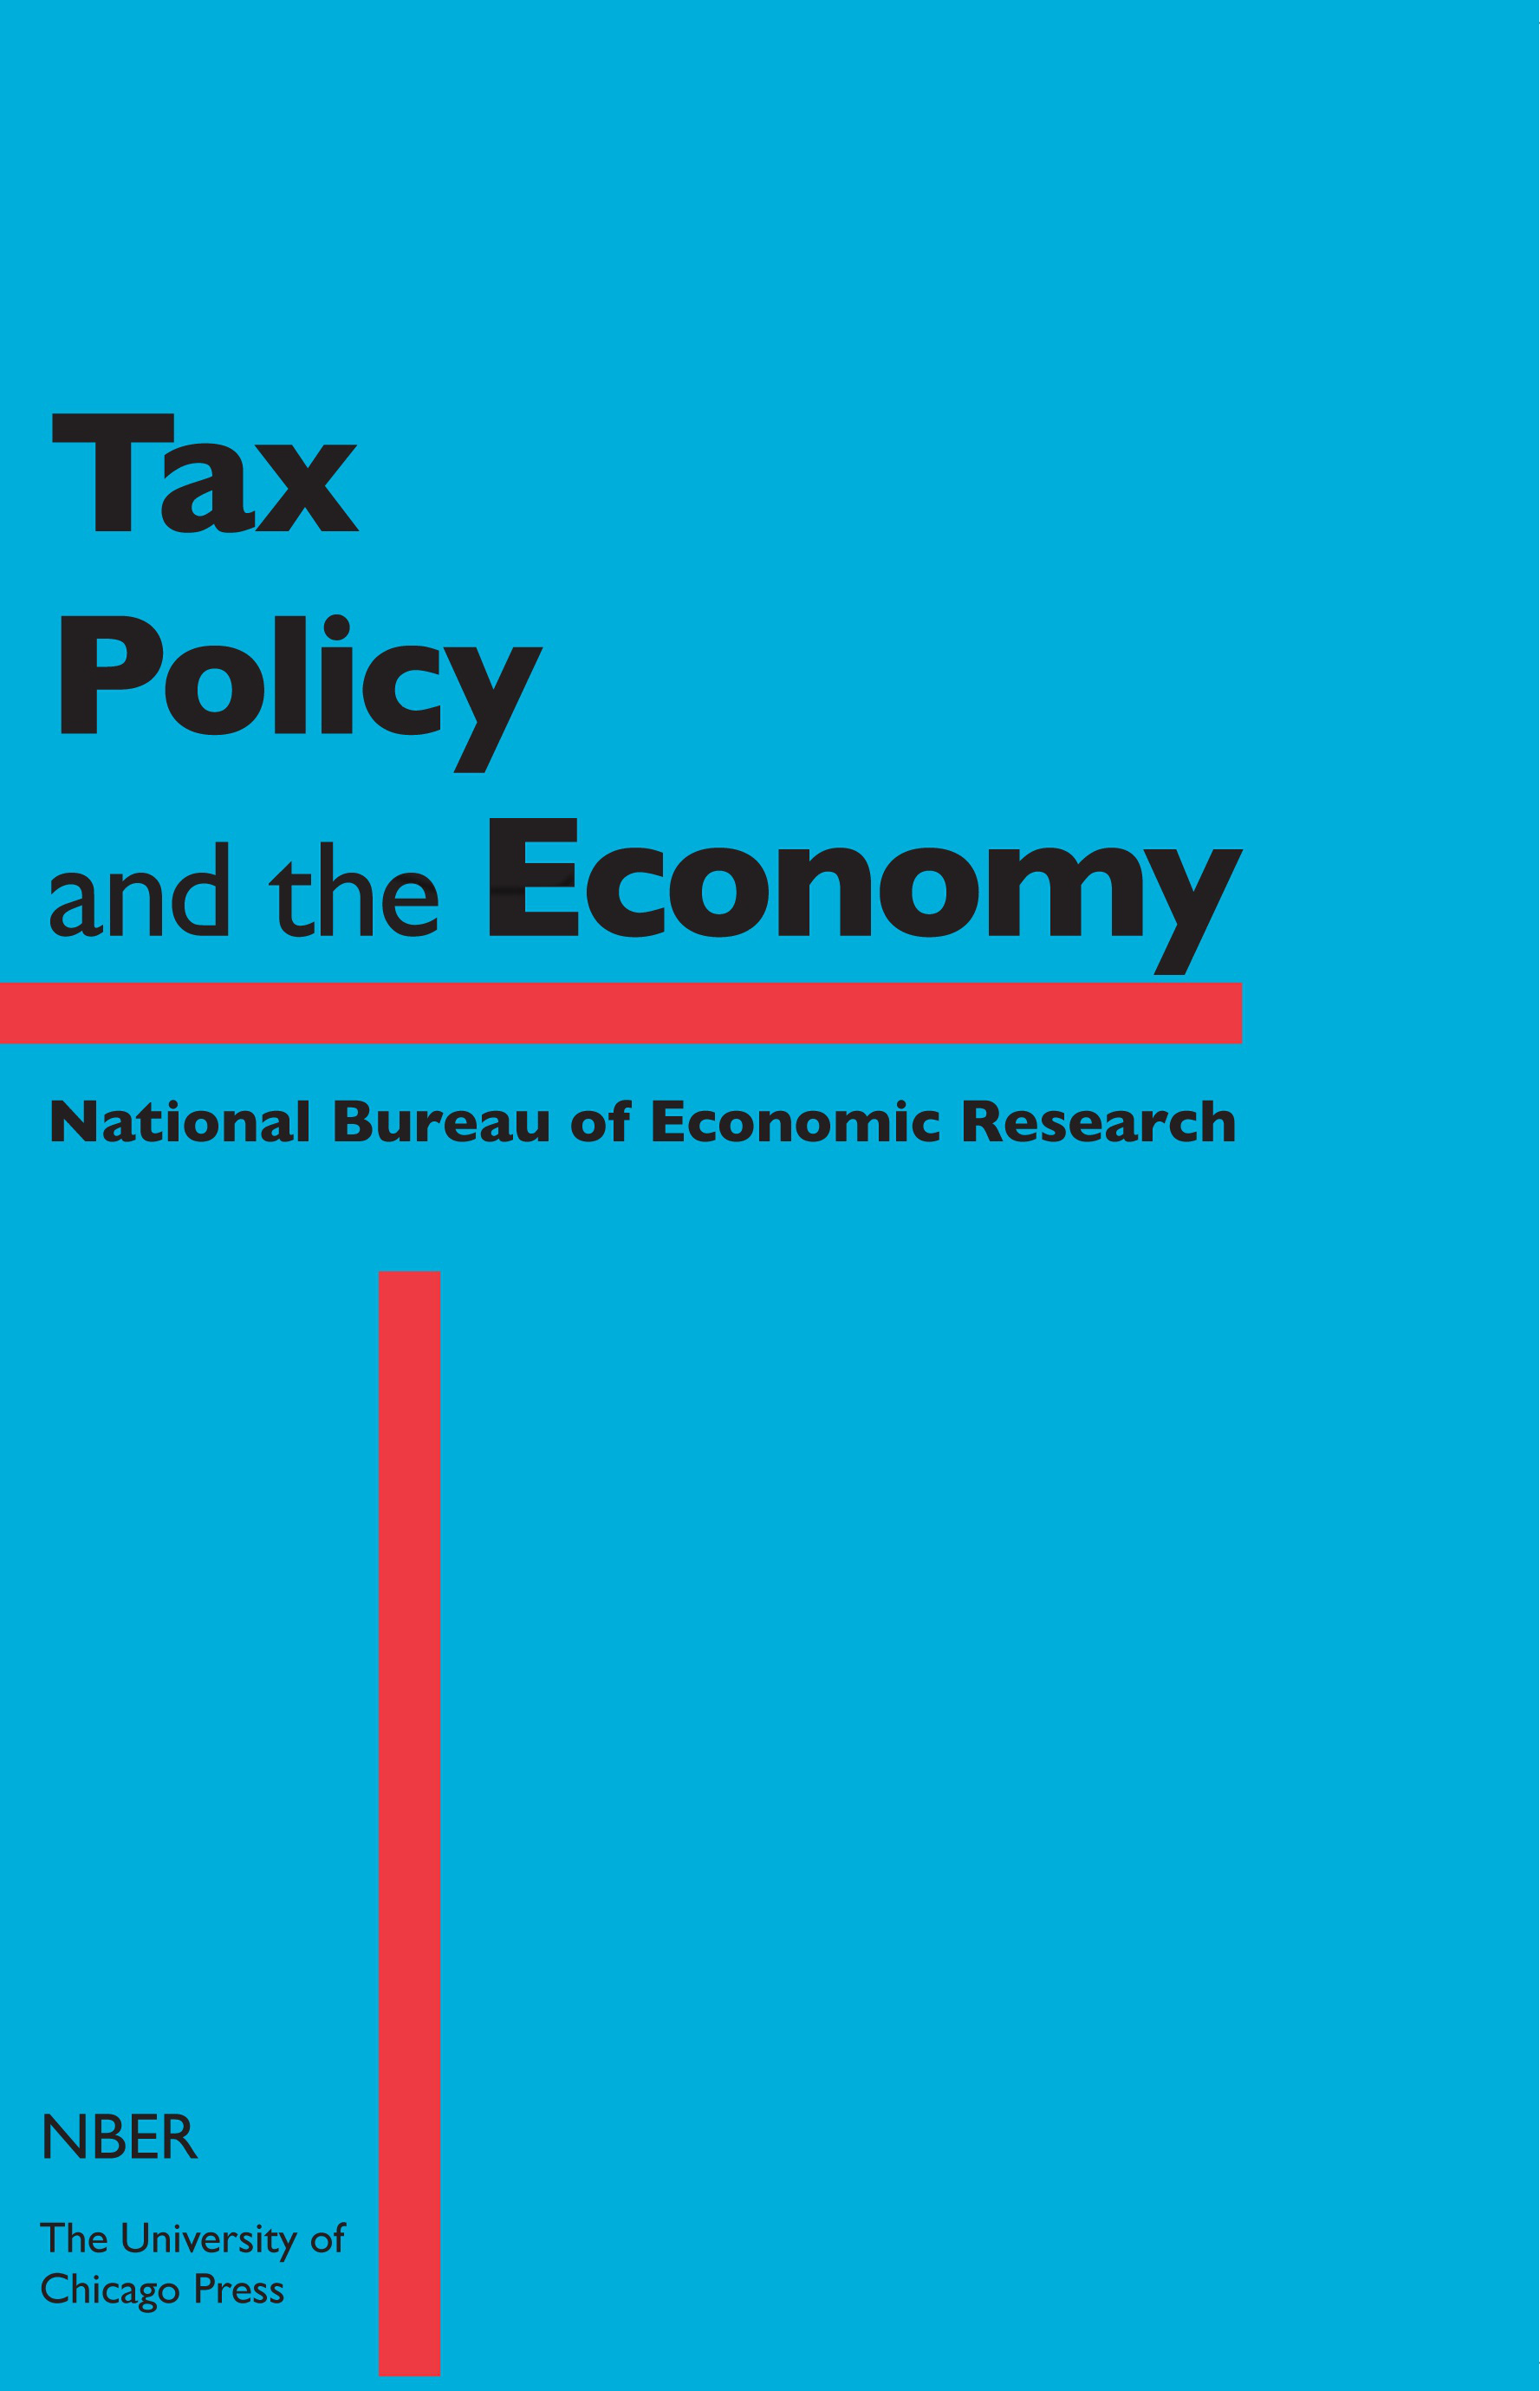 Tax Policy and the Economy, Volume 26